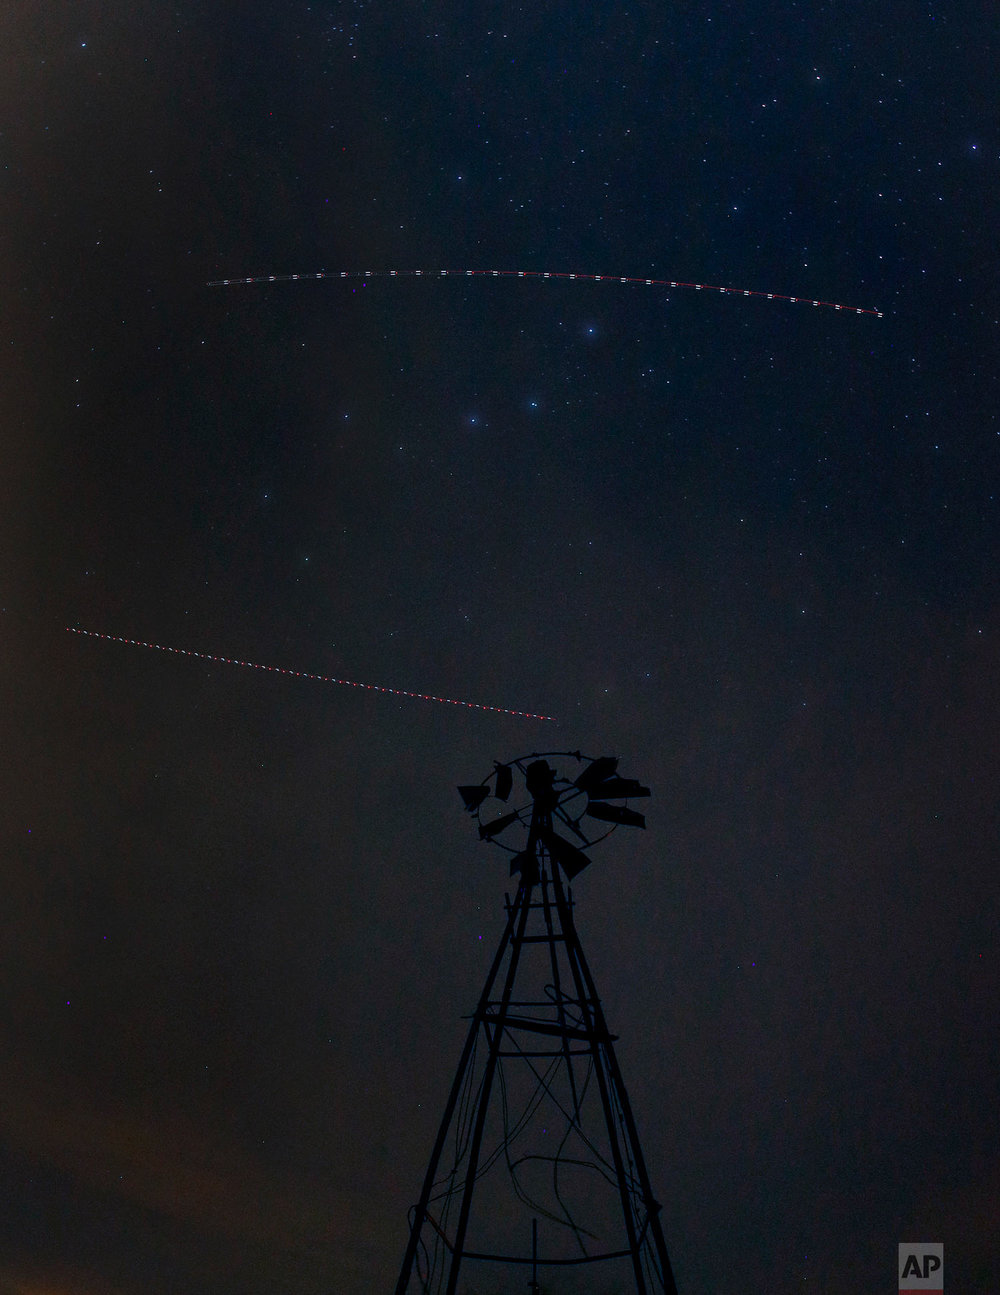 In this photo made with a long exposure, an old windmill is silhouetted against the night sky with the Big Dipper constellation and trails left by the lights of two aircraft near Walker, Kan., on Friday, May 11, 2018. (AP Photo/Charlie Riedel)